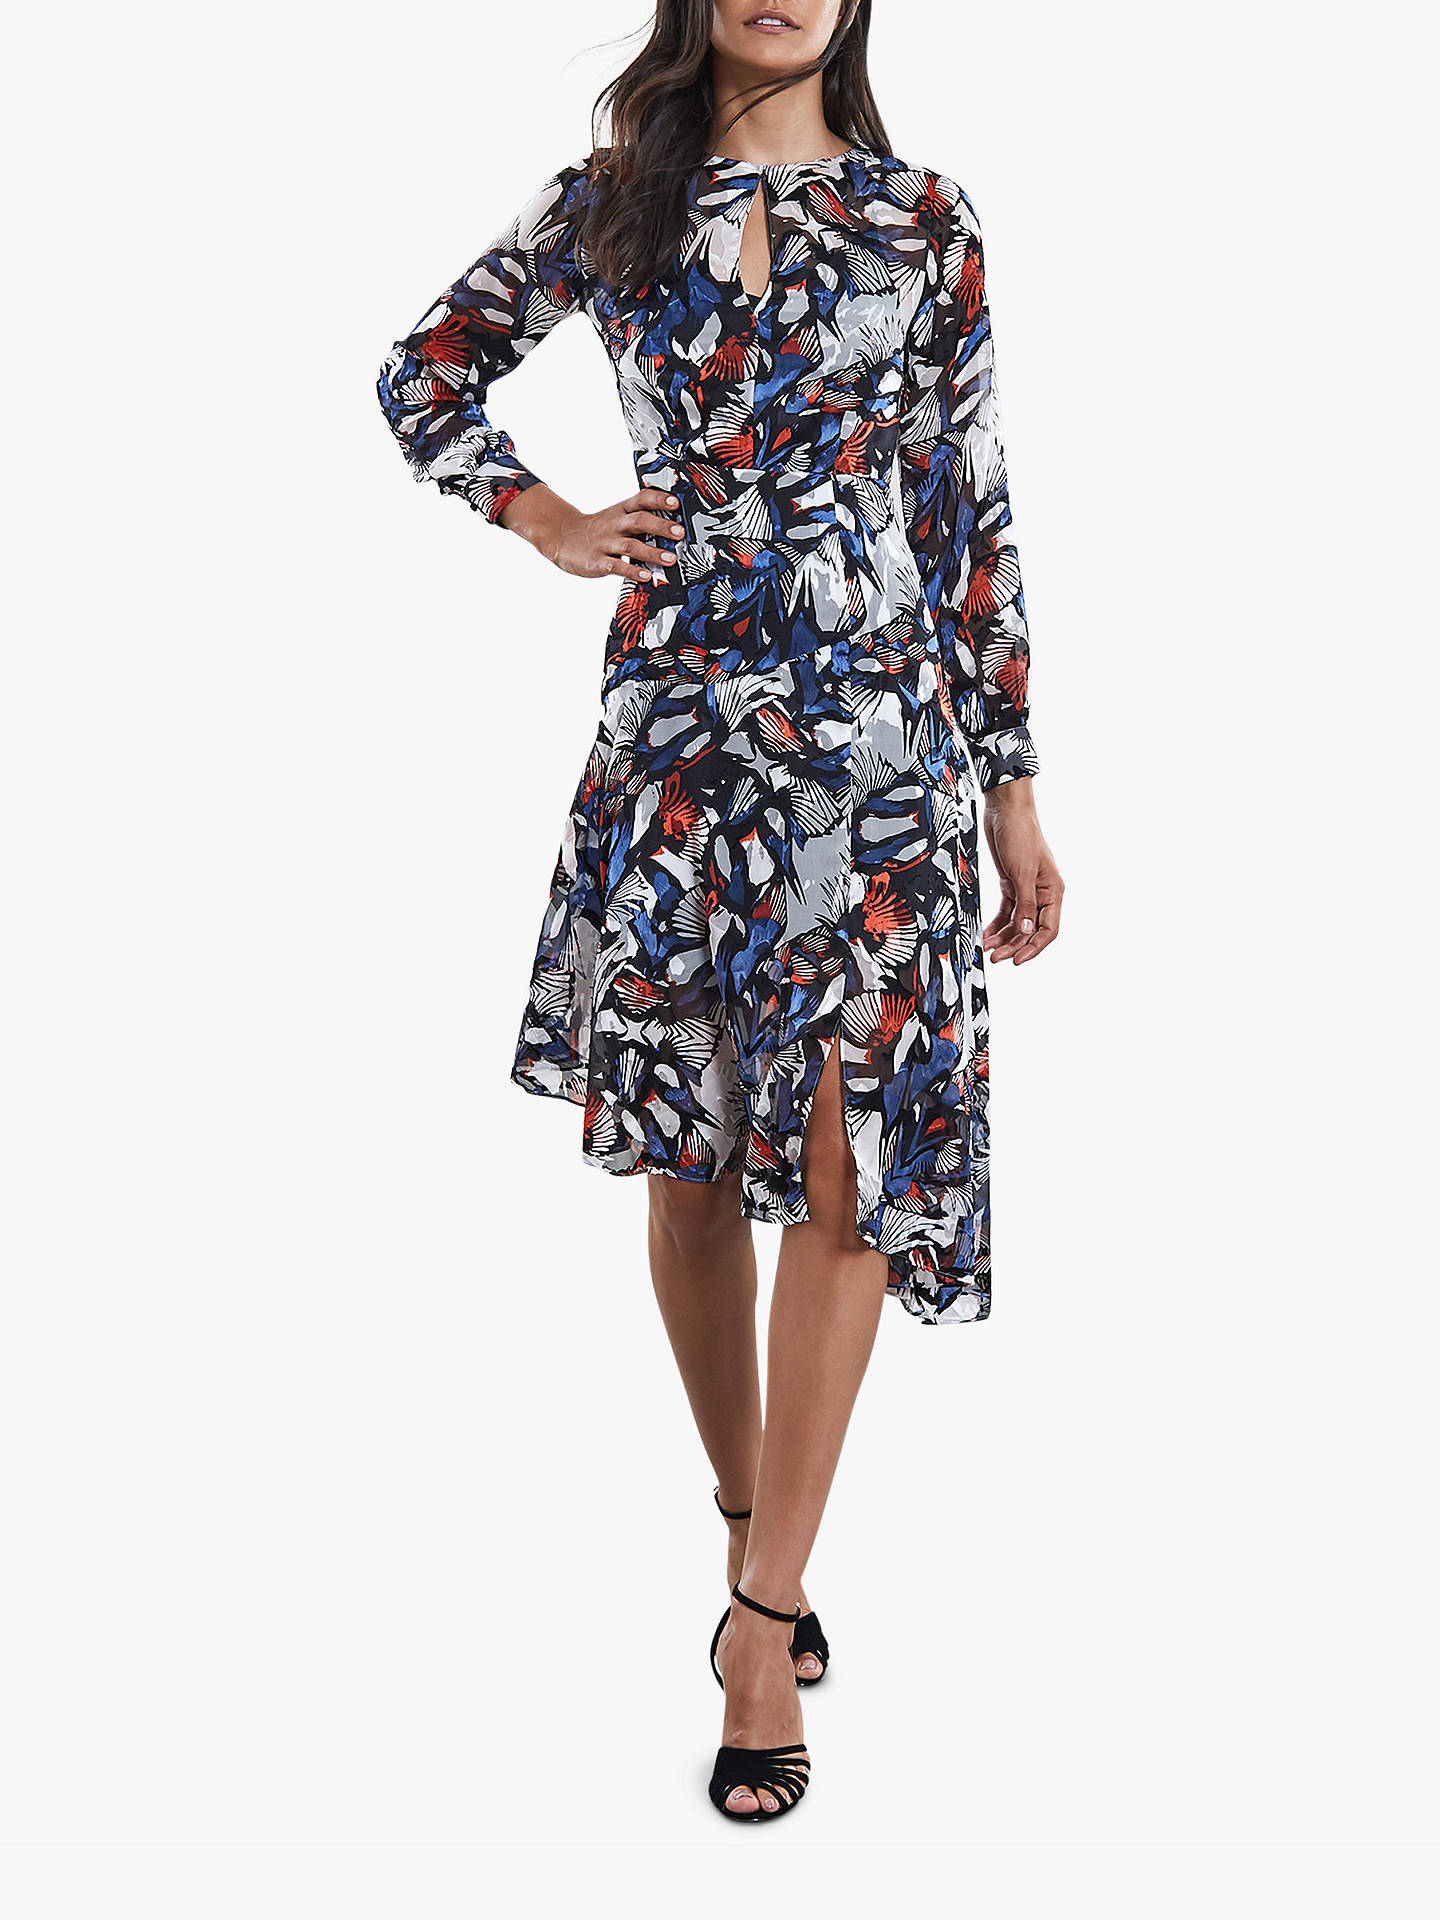 BuyReiss Aria Burnout Printed Dress, Multi, 8 Online at johnlewis.com